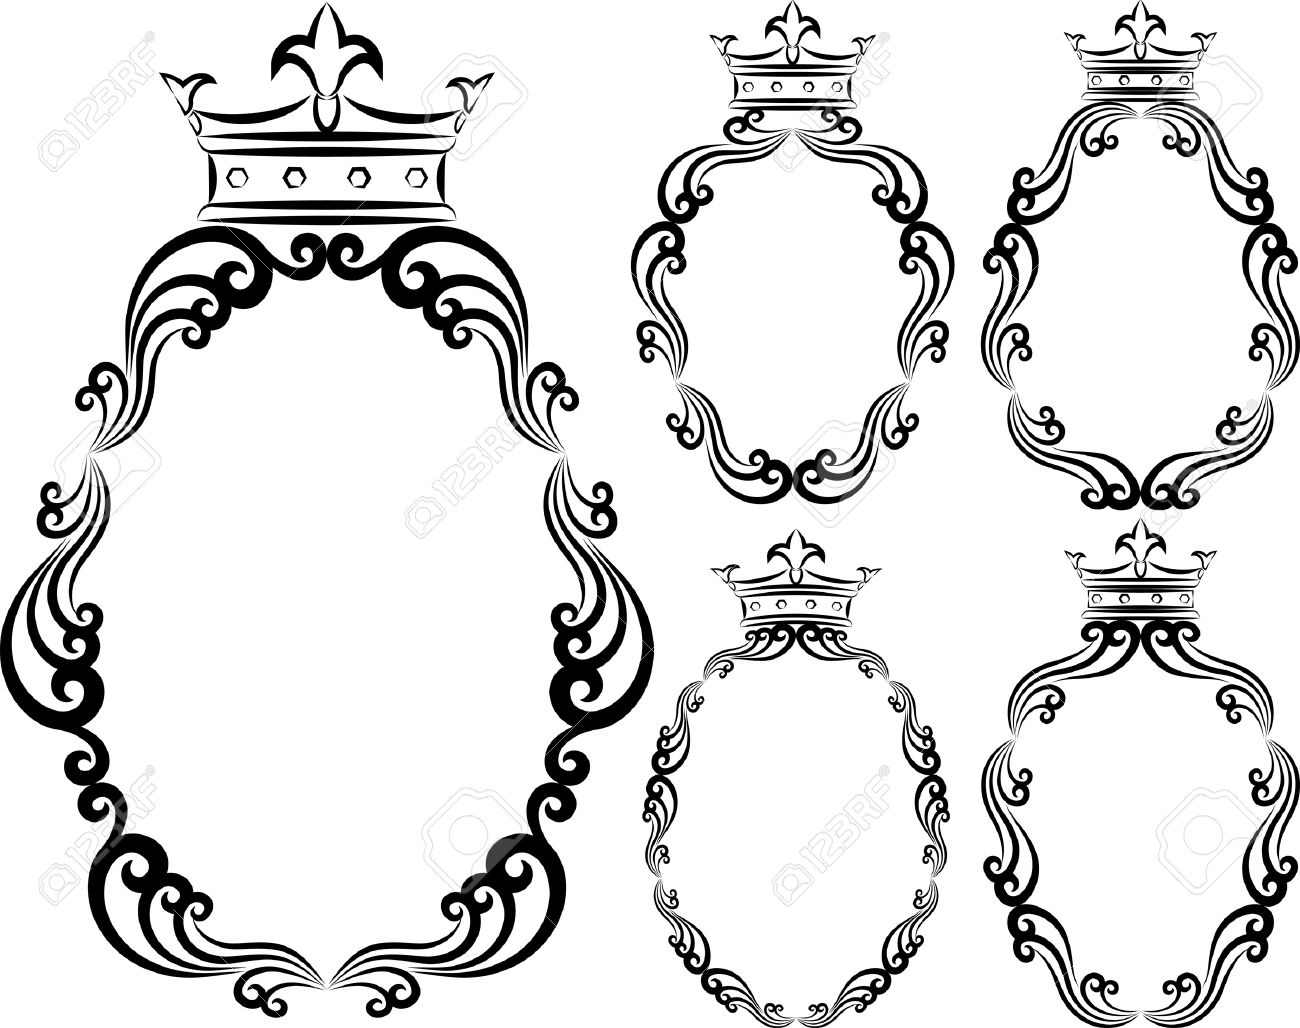 Set Of Decorative Frames With Crowns Royalty Free Cliparts, Vectors ...